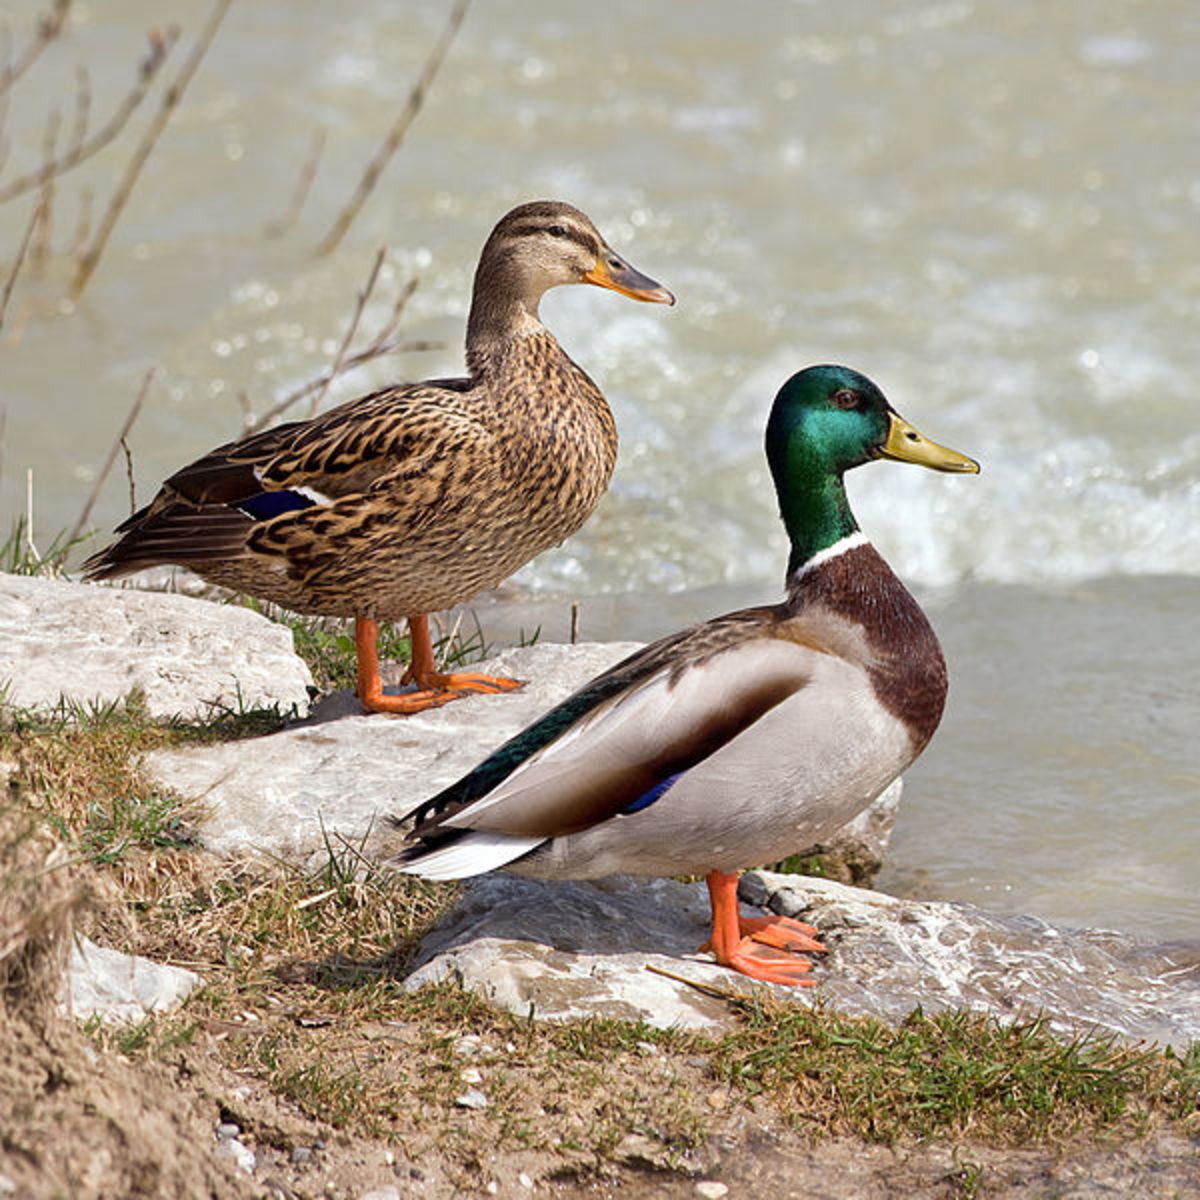 The drake (below) has a glossy green head, white collar, maroon breast and curly black tail feathers. The duck (above) has a greenish yellow bill and a violet blue wing patch.